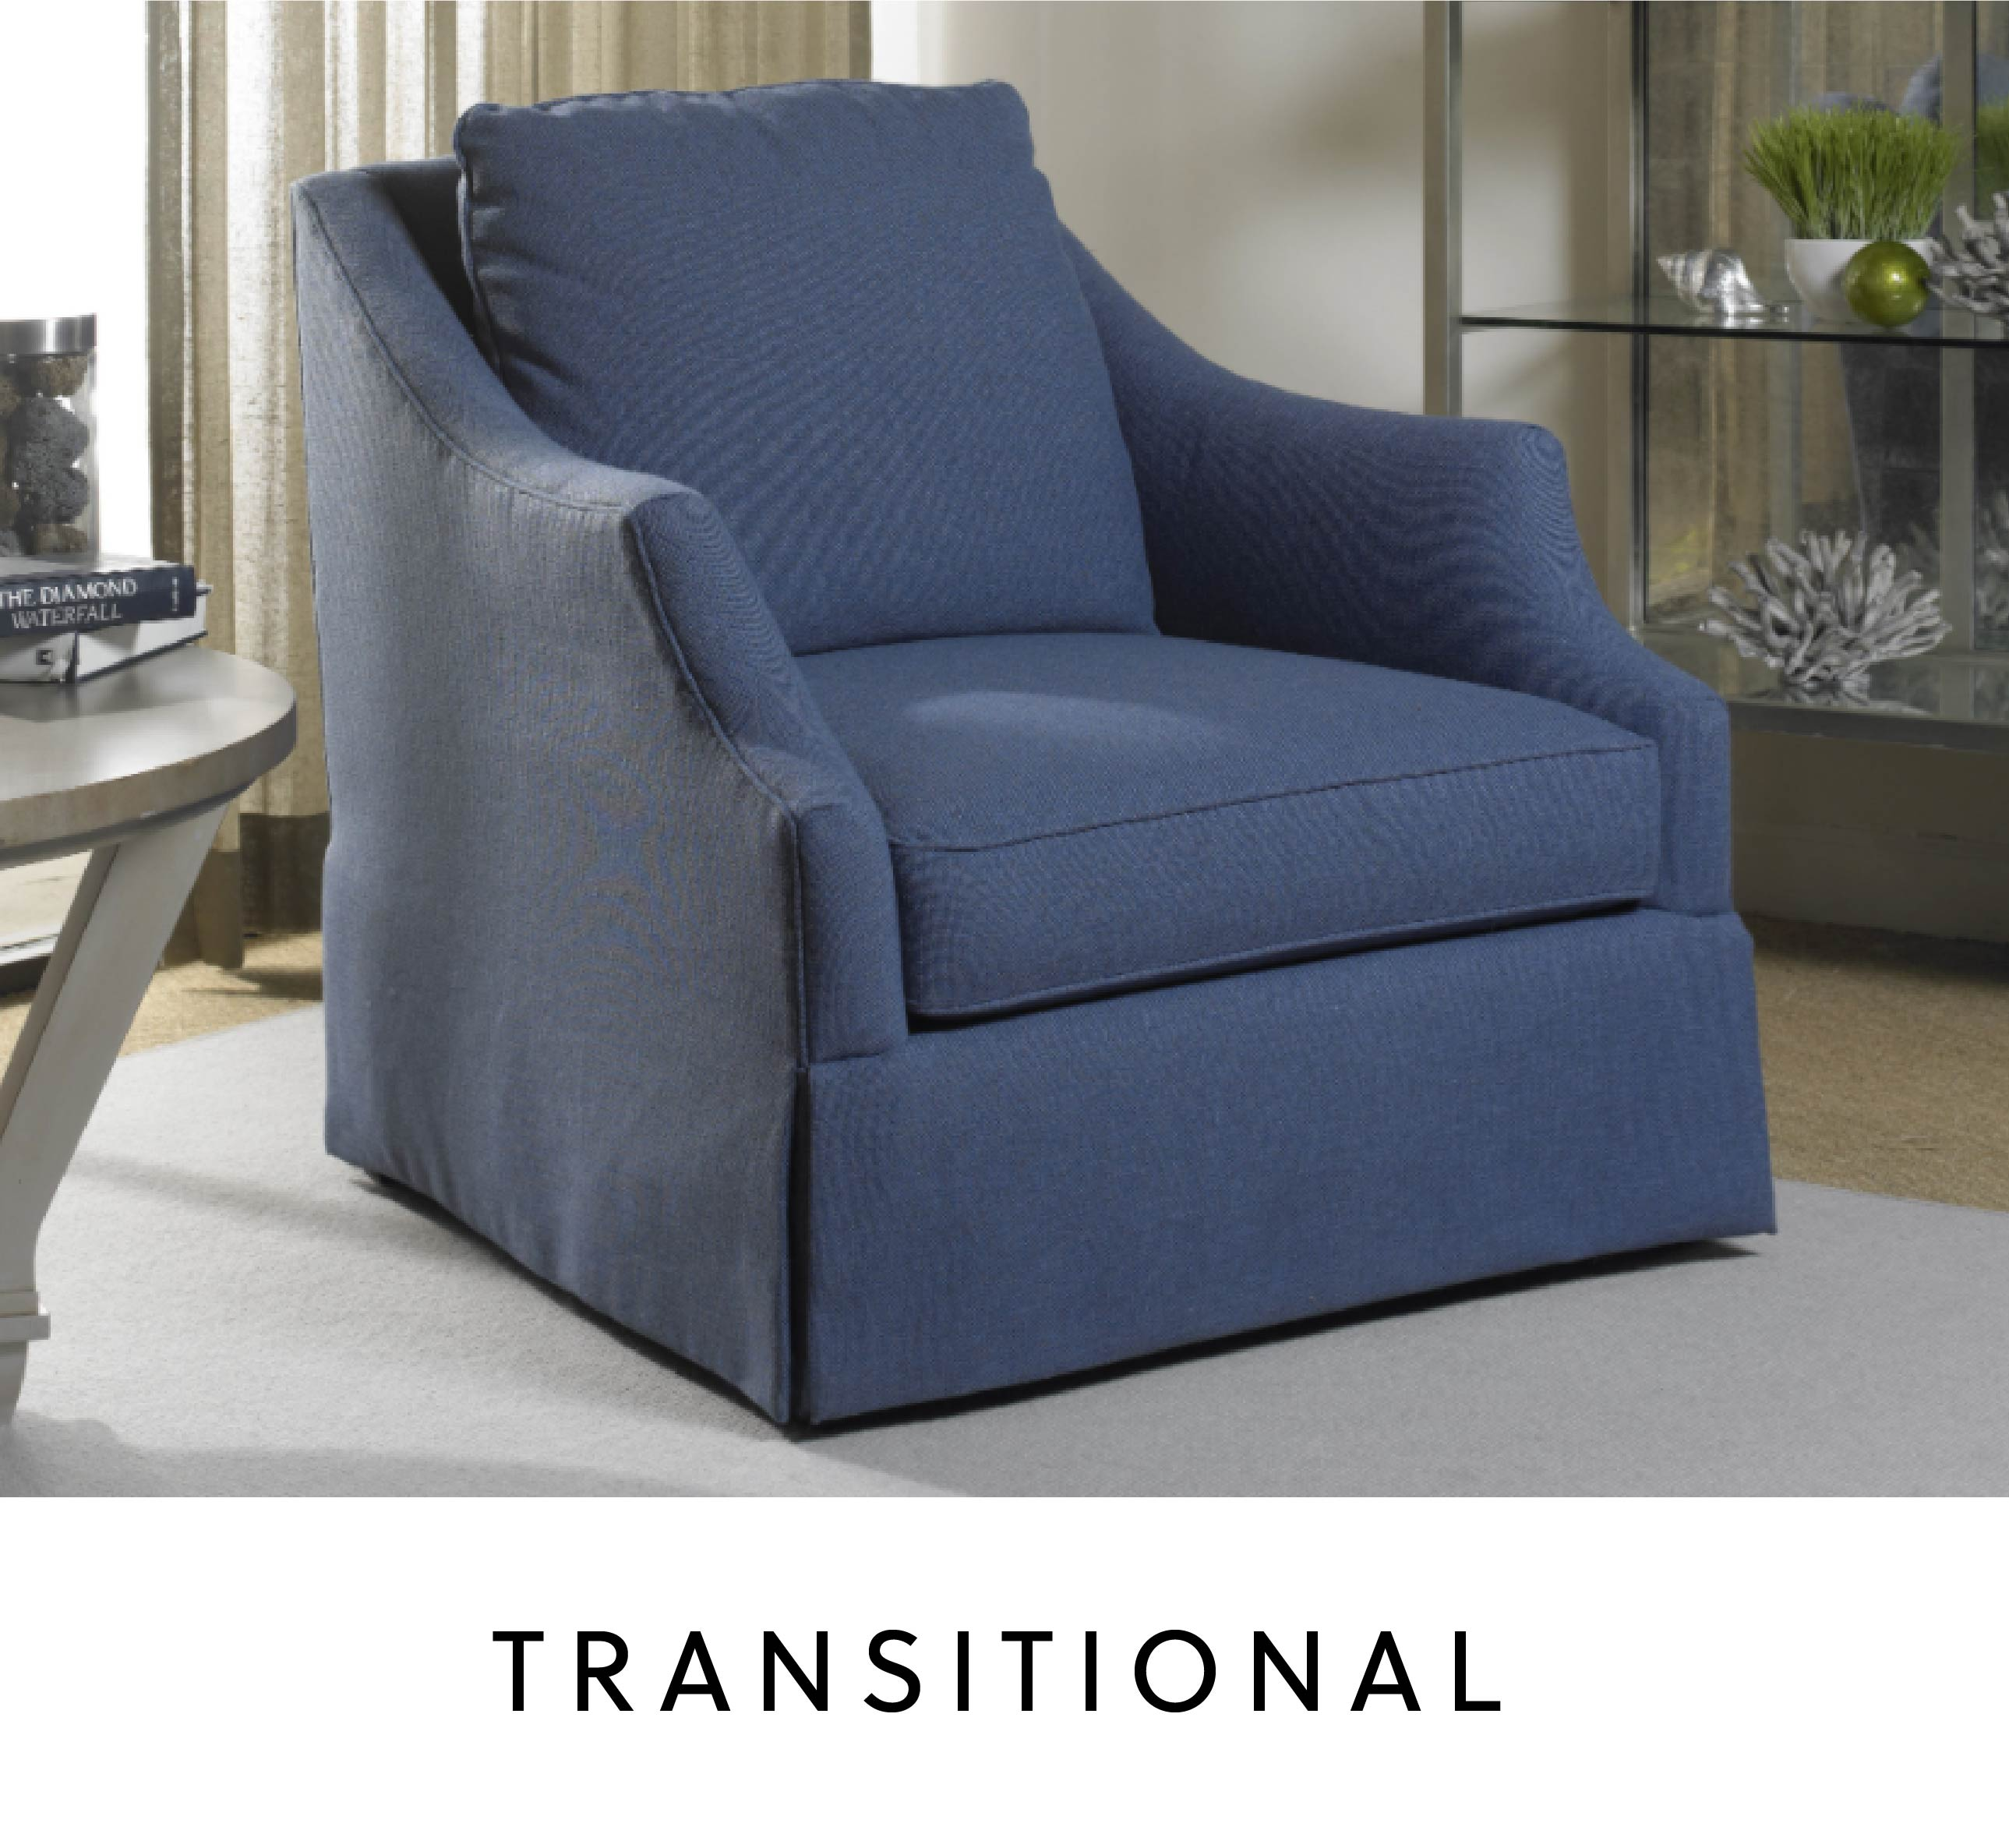 blue transitional armchair